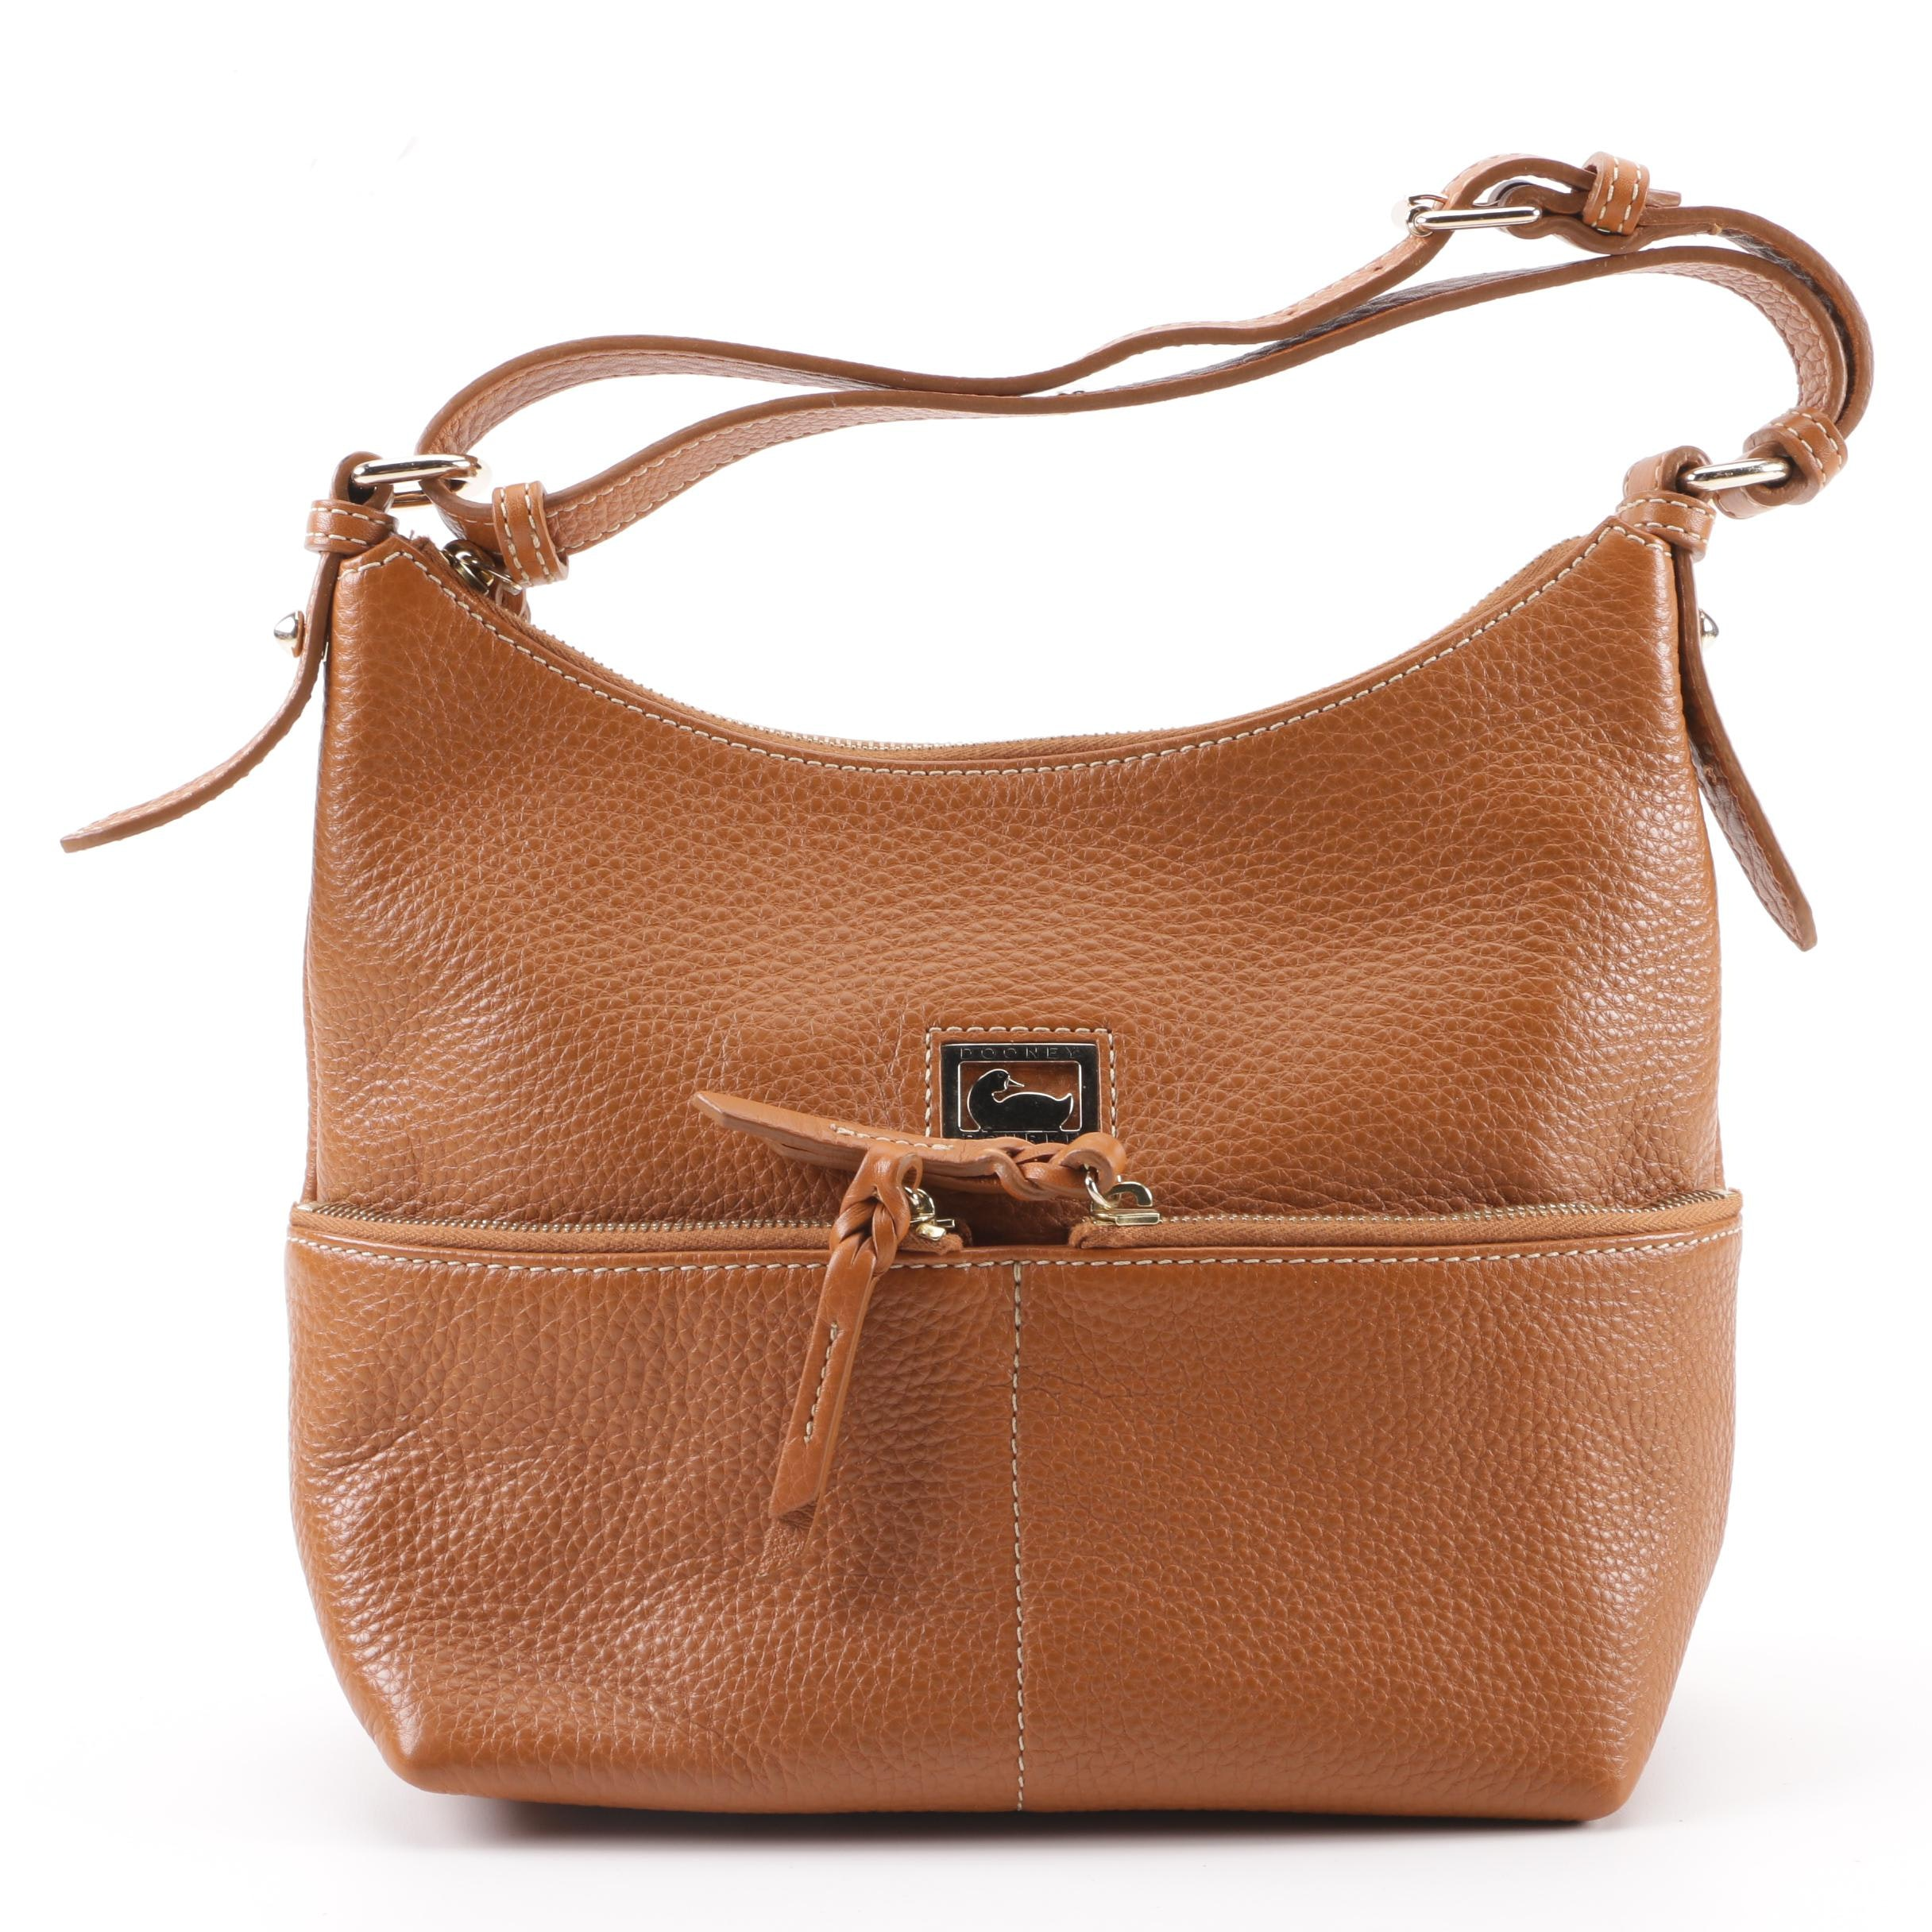 Dooney & Bourke Tan Pebbled Leather Hobo Bag